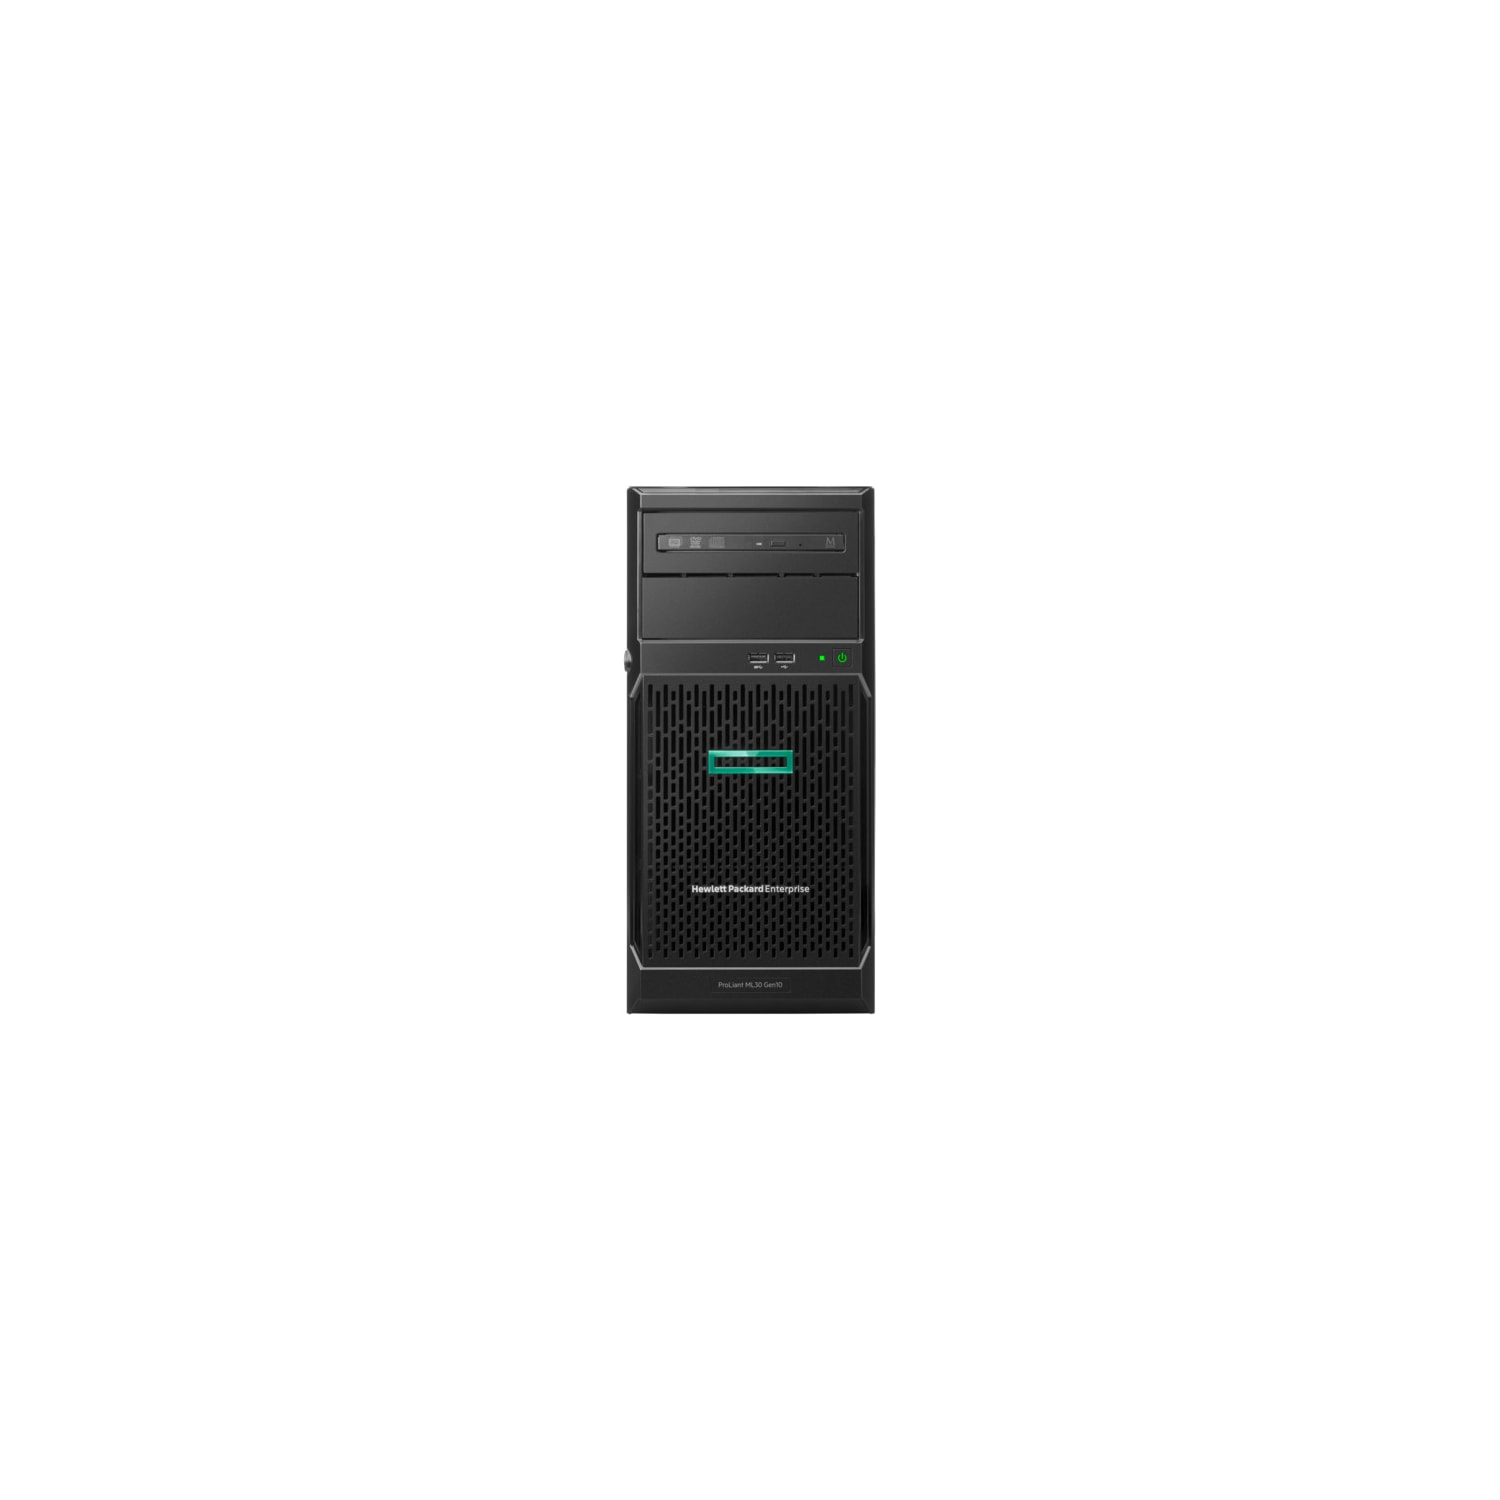 Buy HPE ProLiant ML30 G10 4U Tower Server - 1 x Xeon E-2124